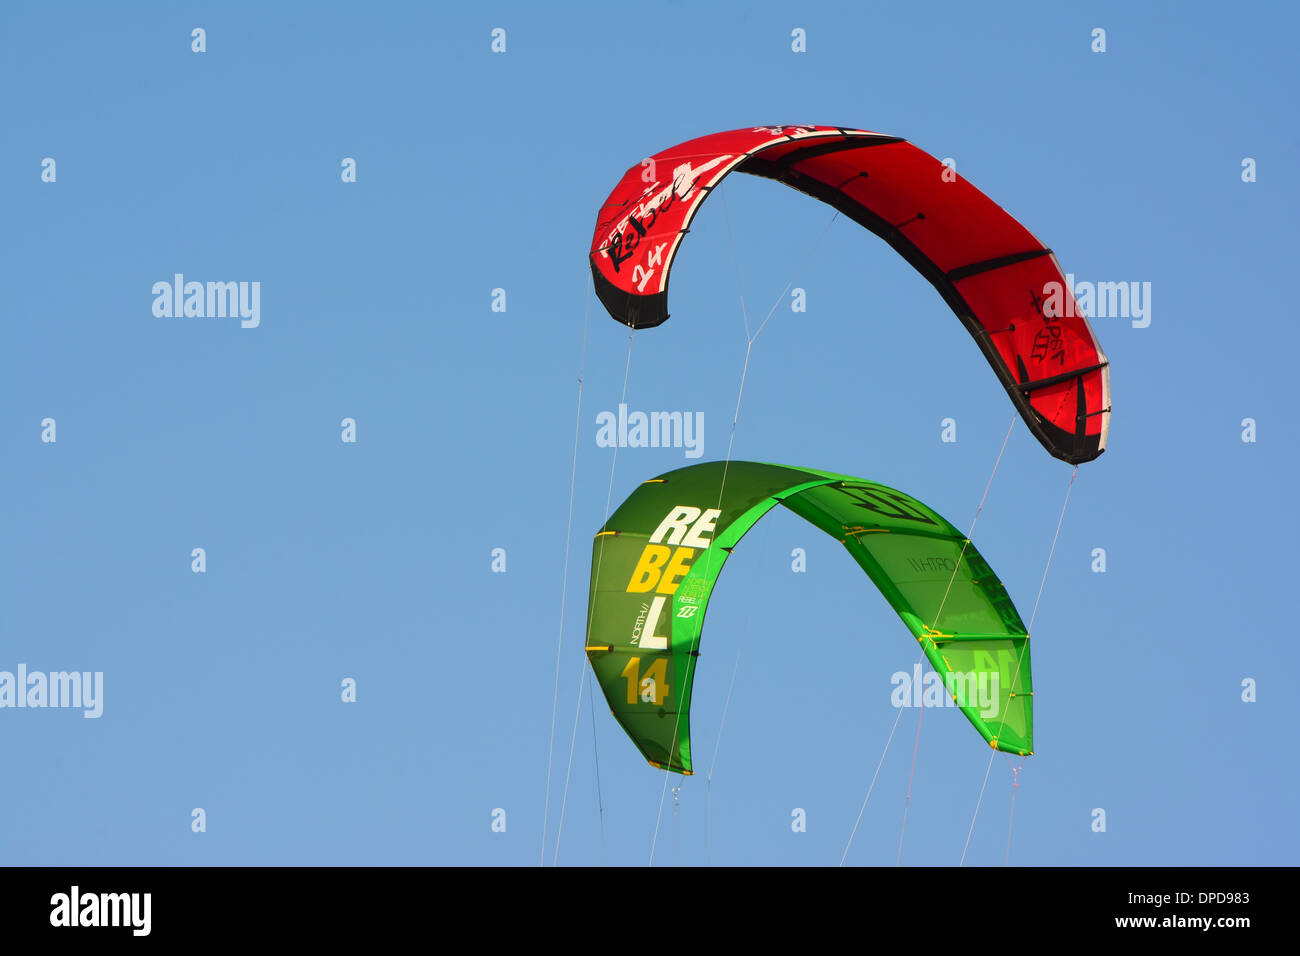 Kite surfing, Kites in the air - Stock Image